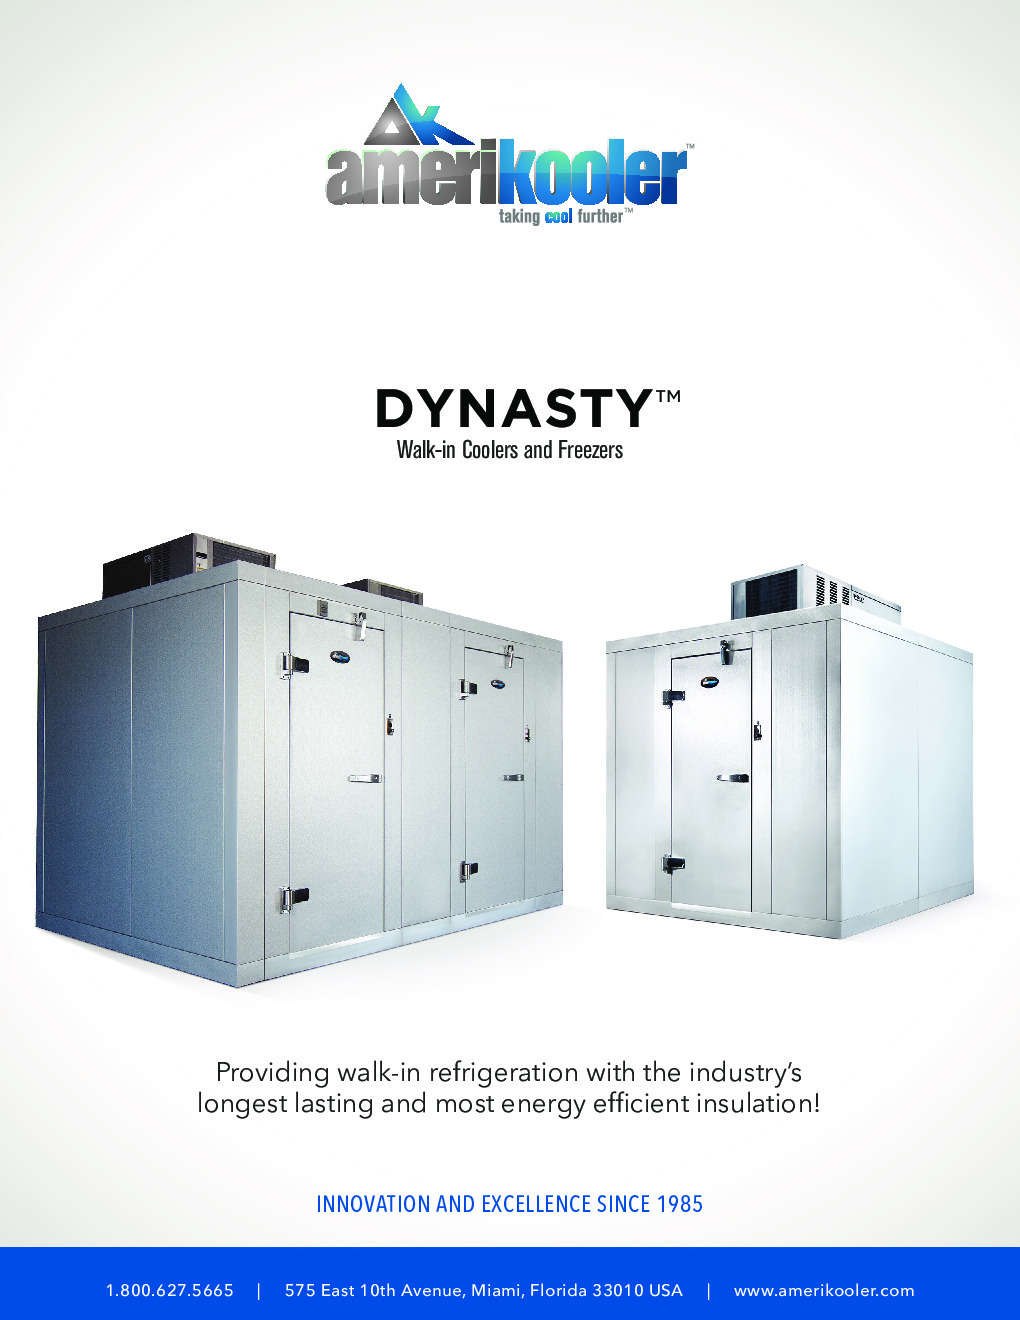 AmeriKooler DW071077F-5/5-SC 7' X 10' Walk-In Cooler, 5' L Cooler with Floor and 5' L Freezer, Self Contained